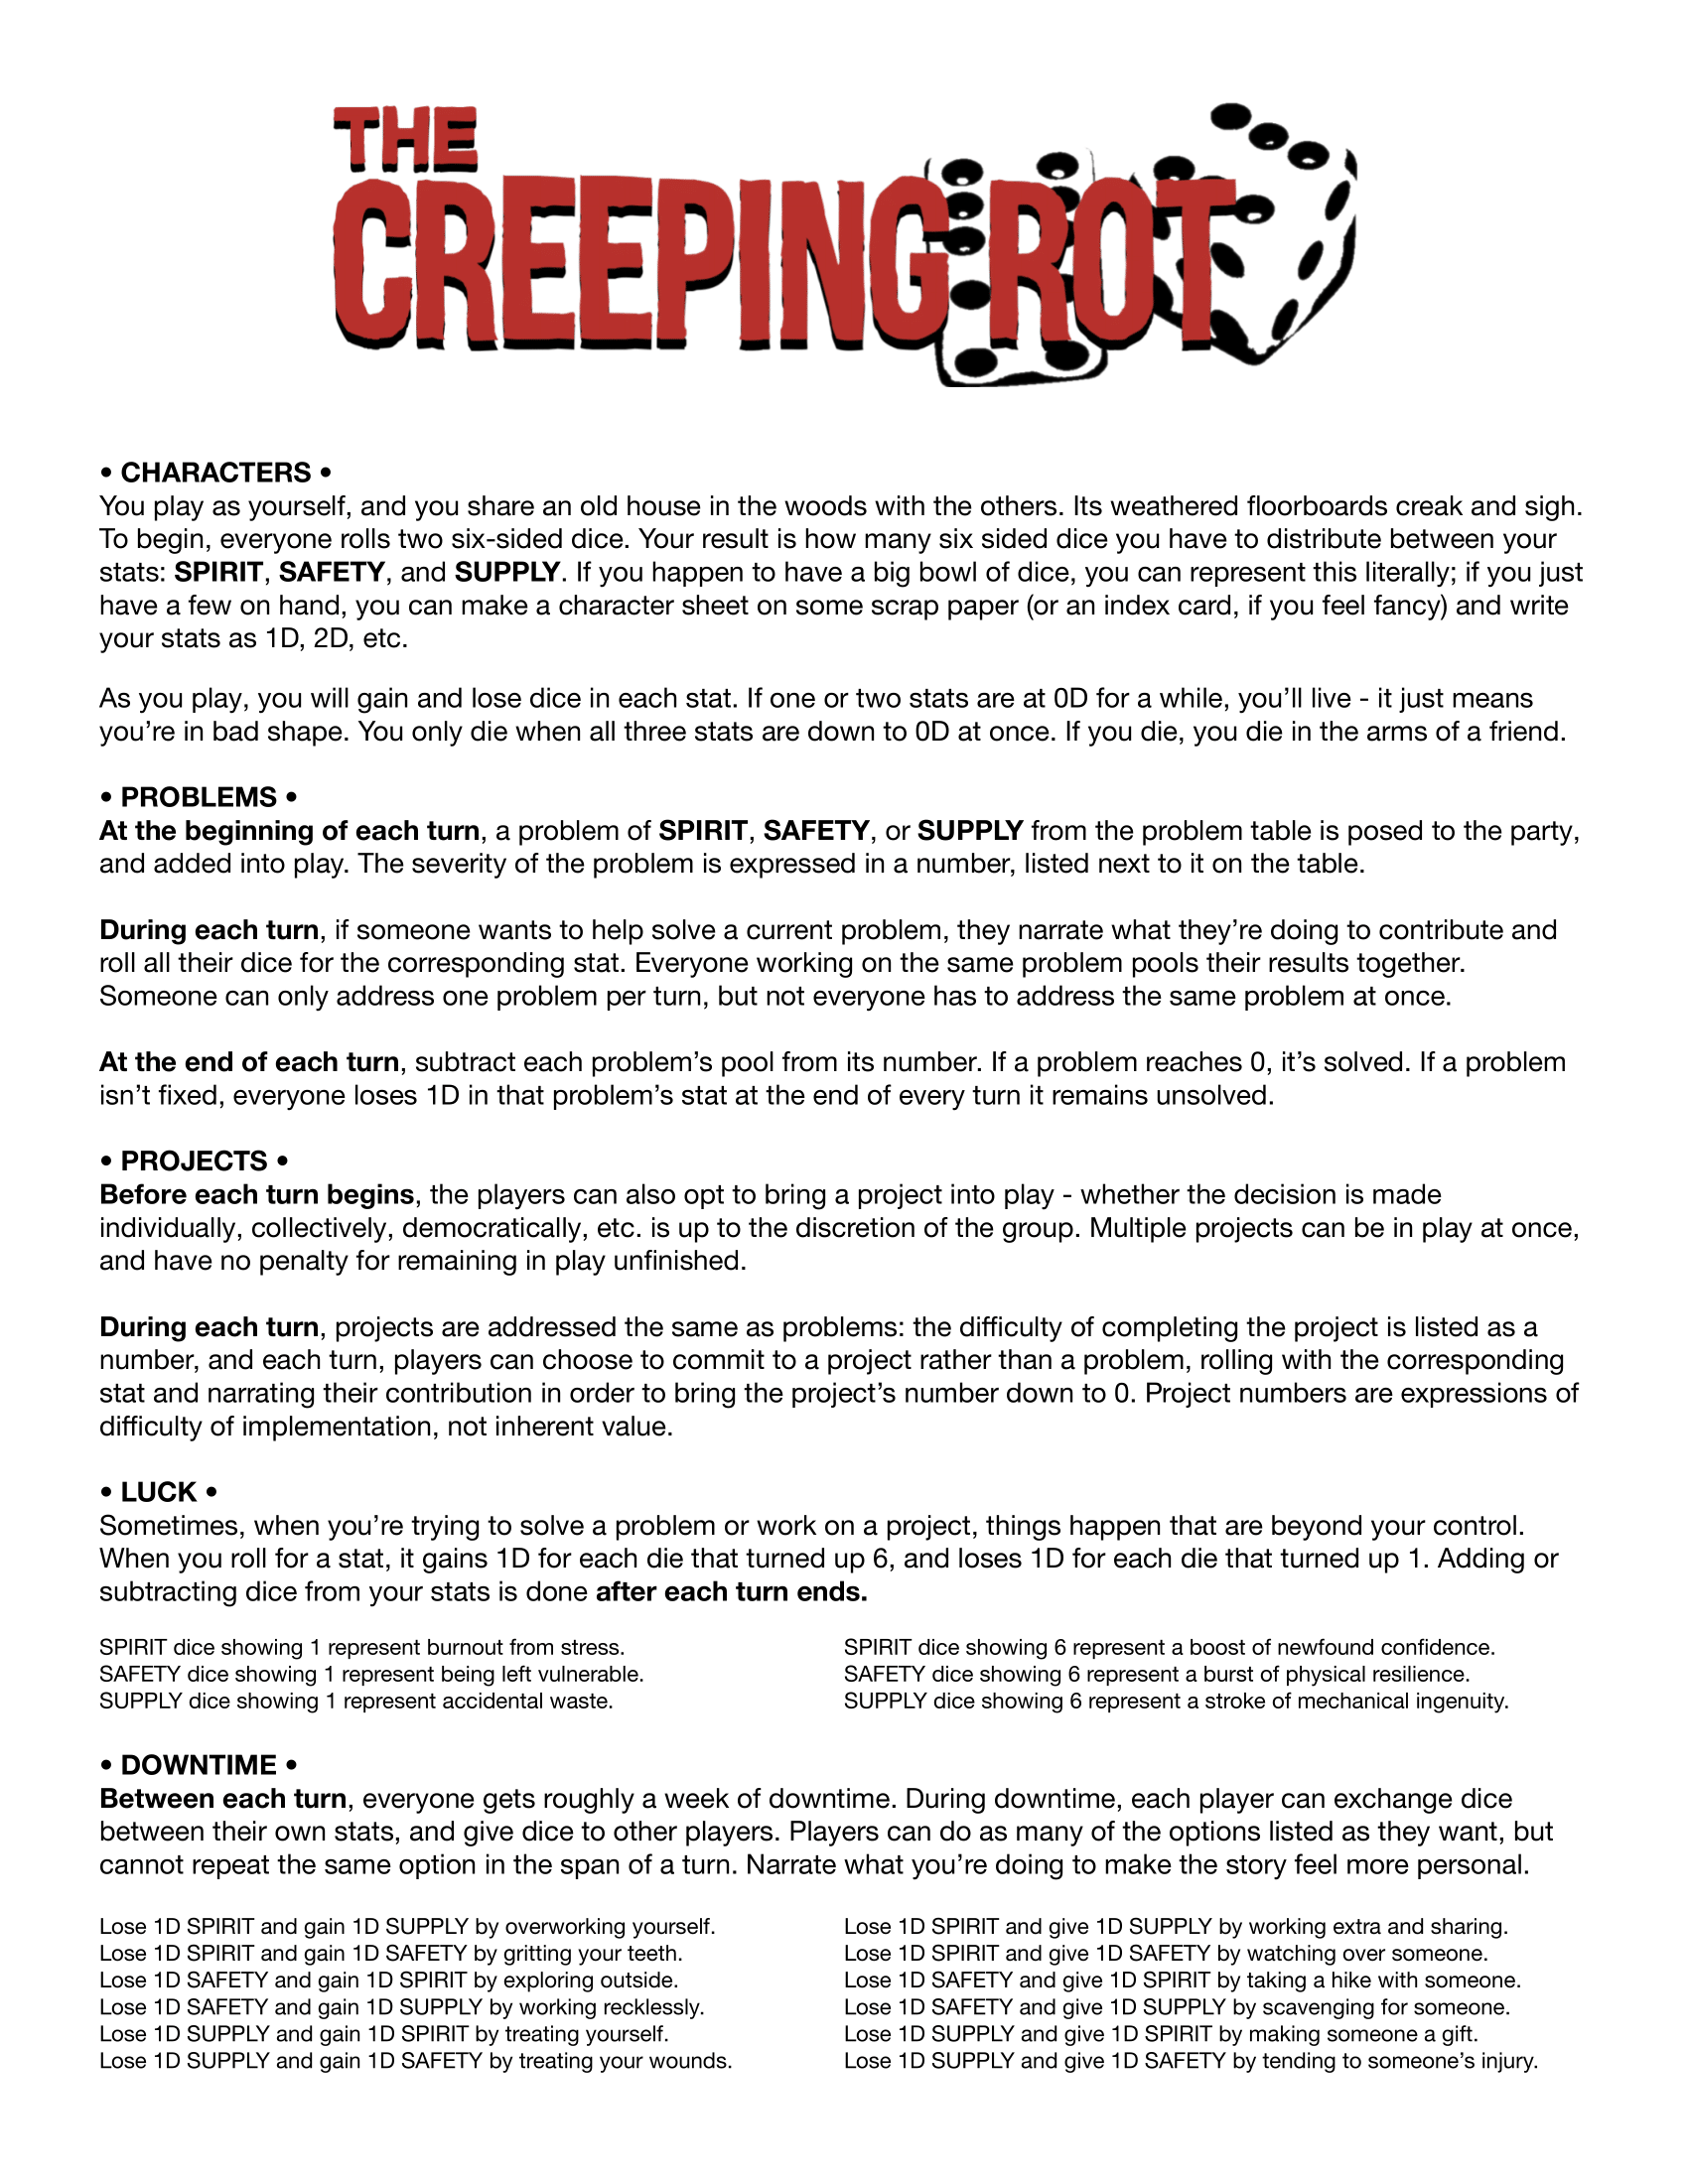 The Creeping Rot teaser